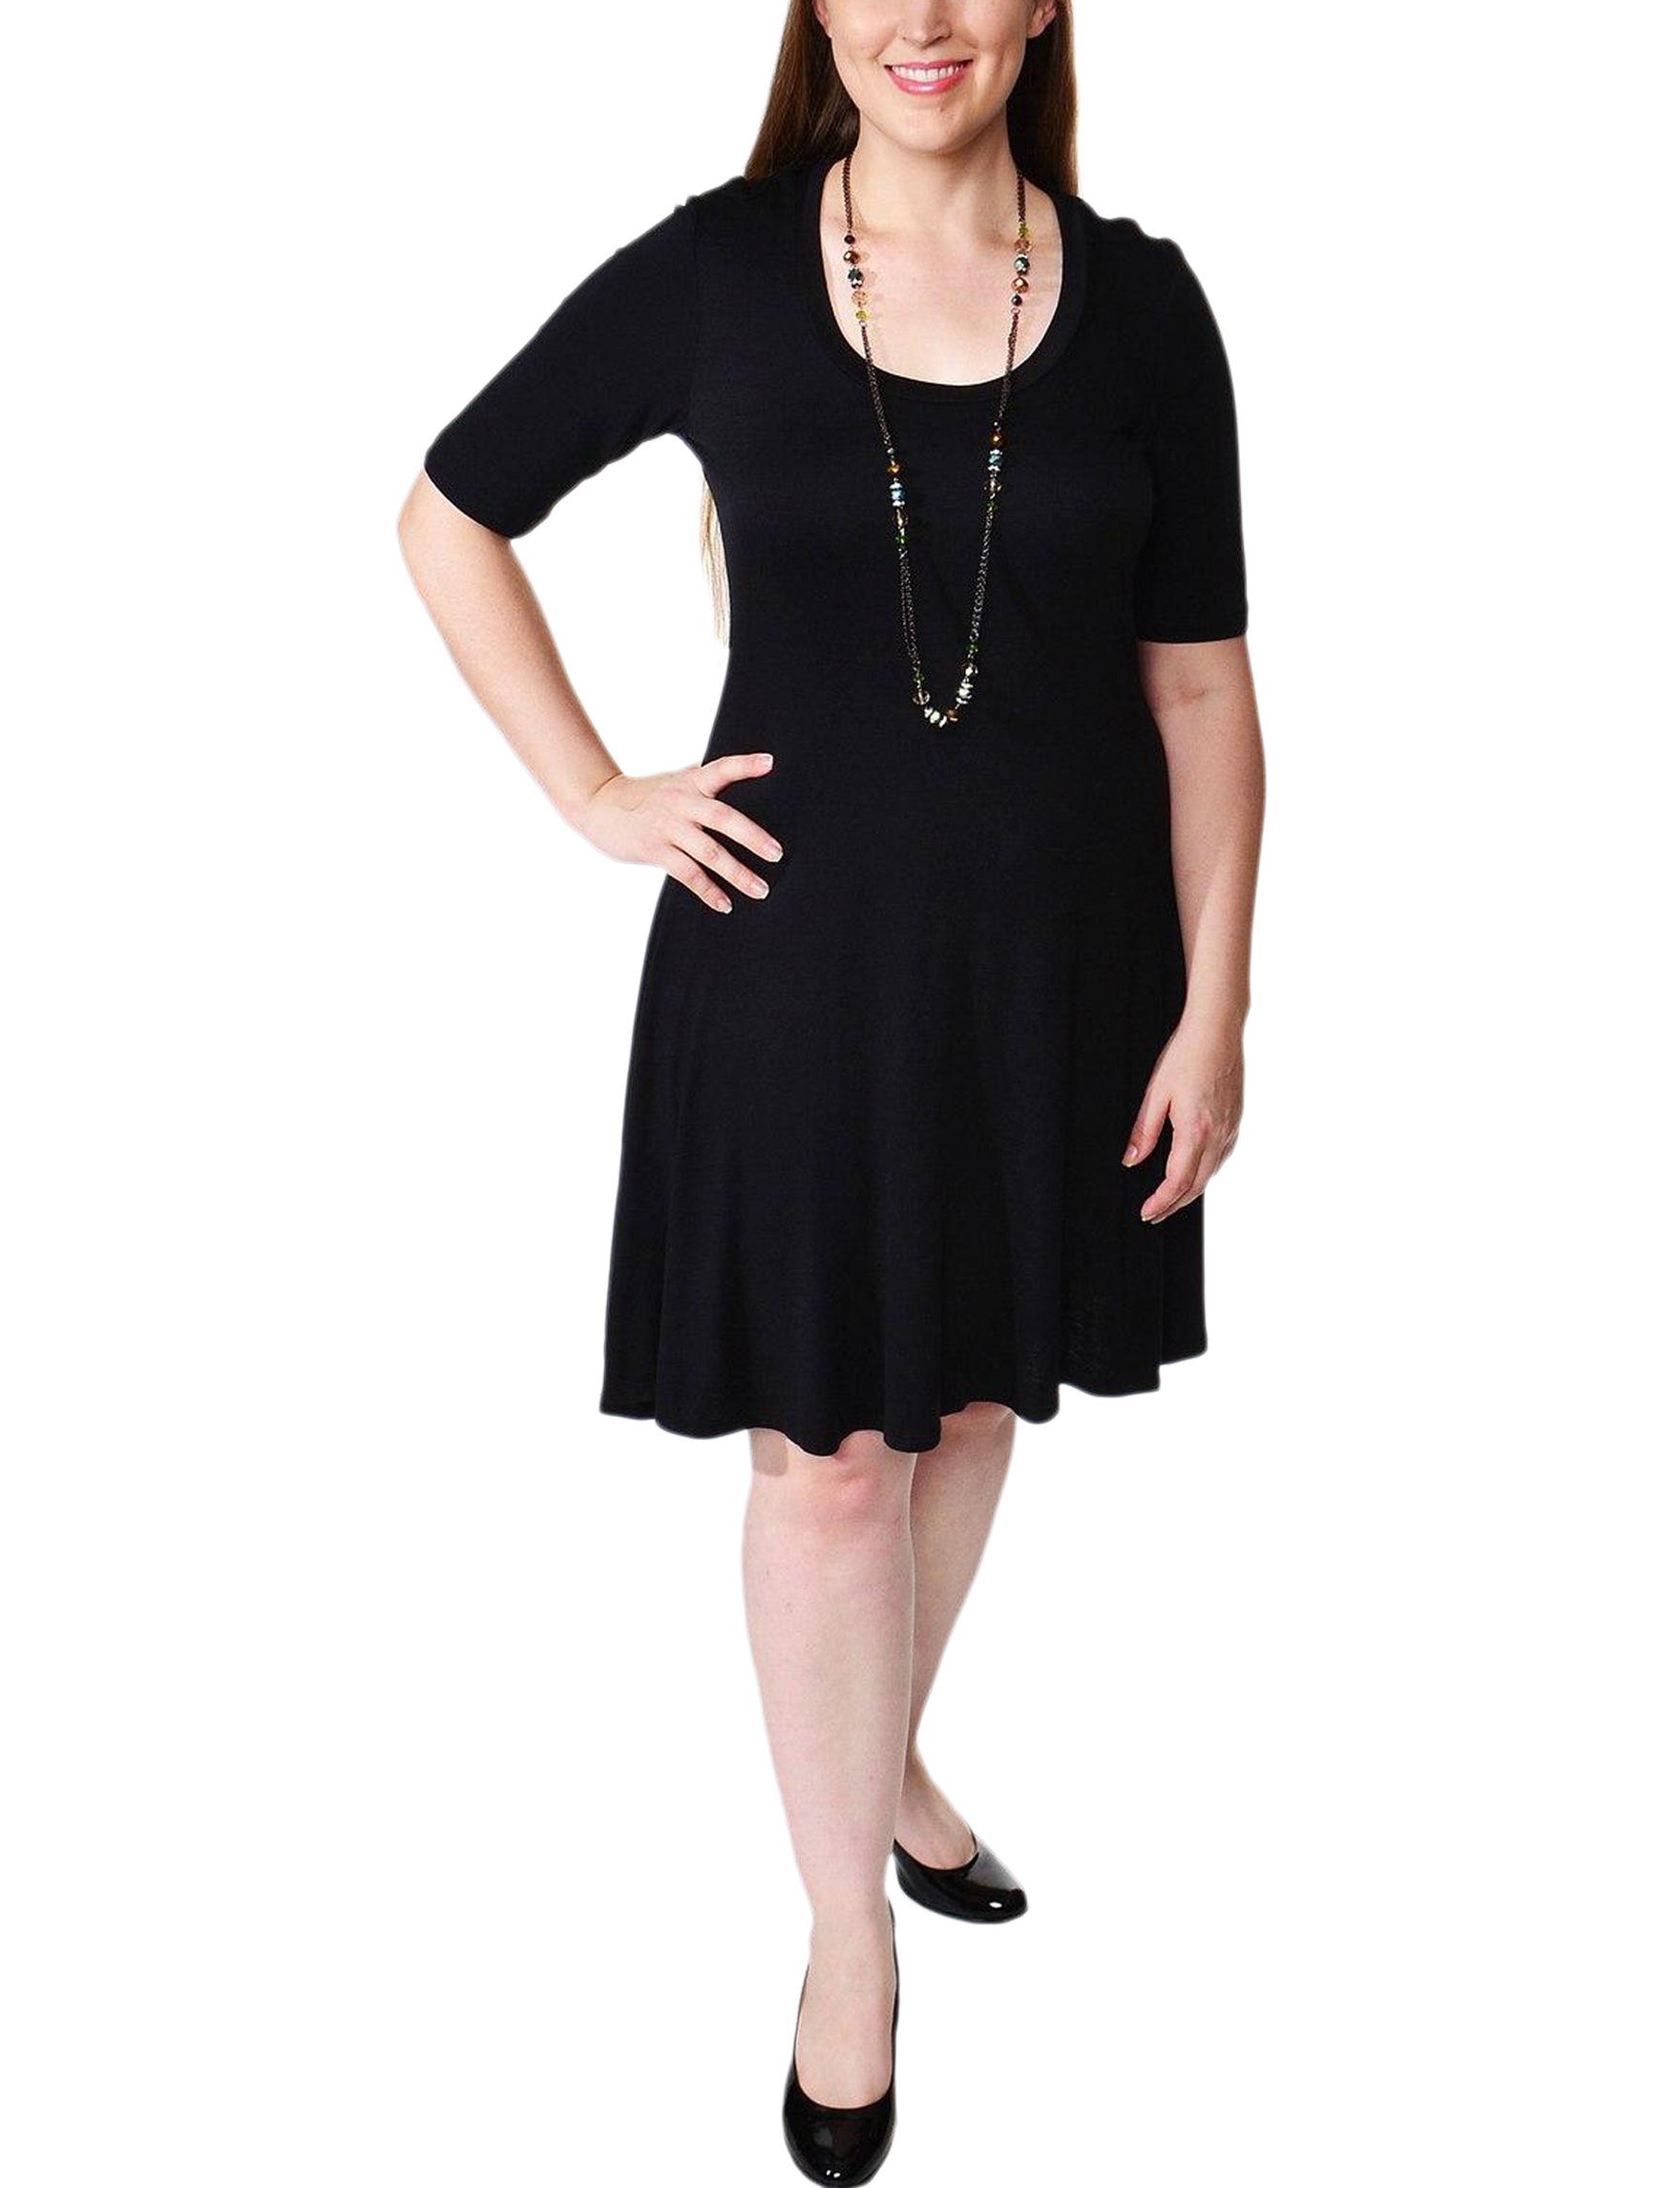 24Seven Comfort Apparel Black Cocktail & Party Everyday & Casual Shift Dresses